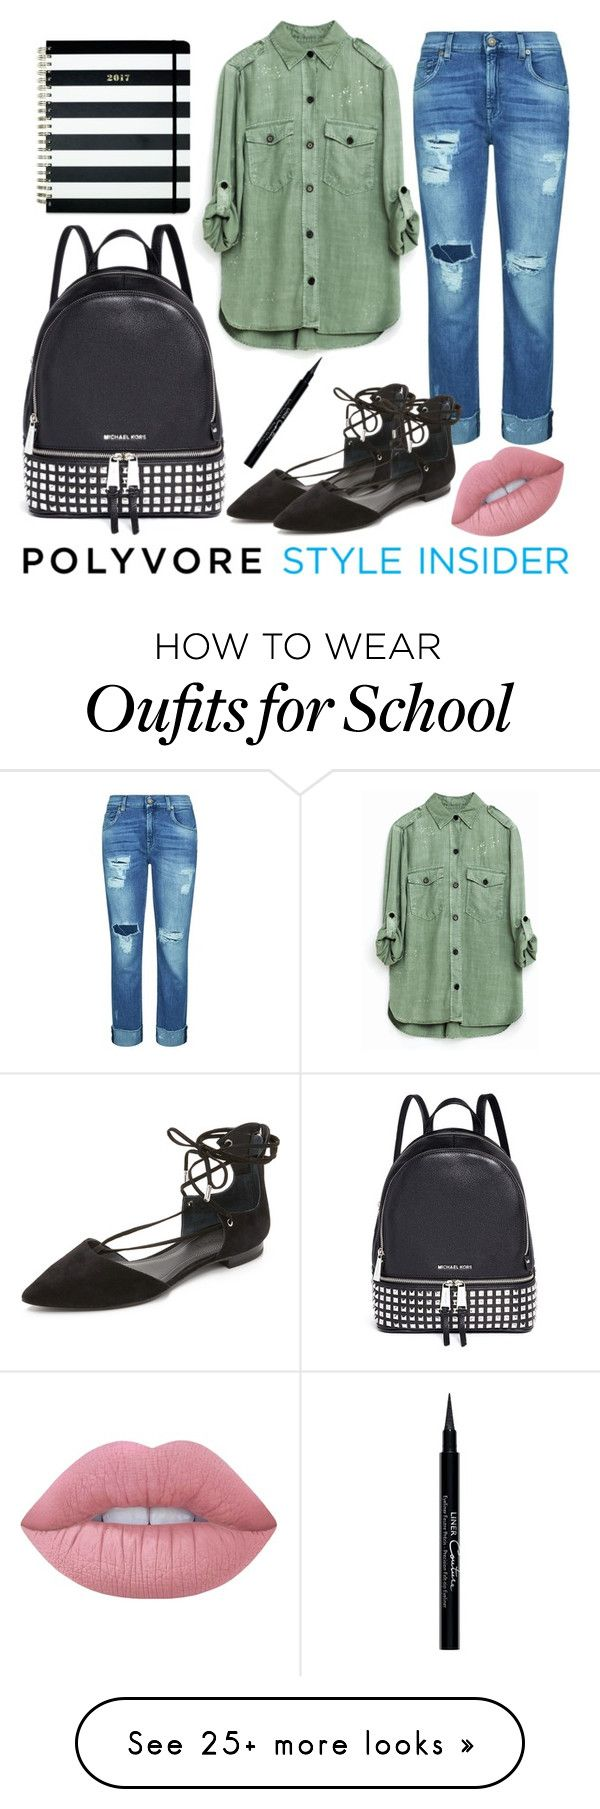 """""""Too cool for school"""" by seth133 on Polyvore featuring 7 For All Mankind, Kendall + Kylie, Michael Kors, Kate Spade, Givenchy, Lime Crime, backpacks, contestentry and PVStyleInsiderContest"""